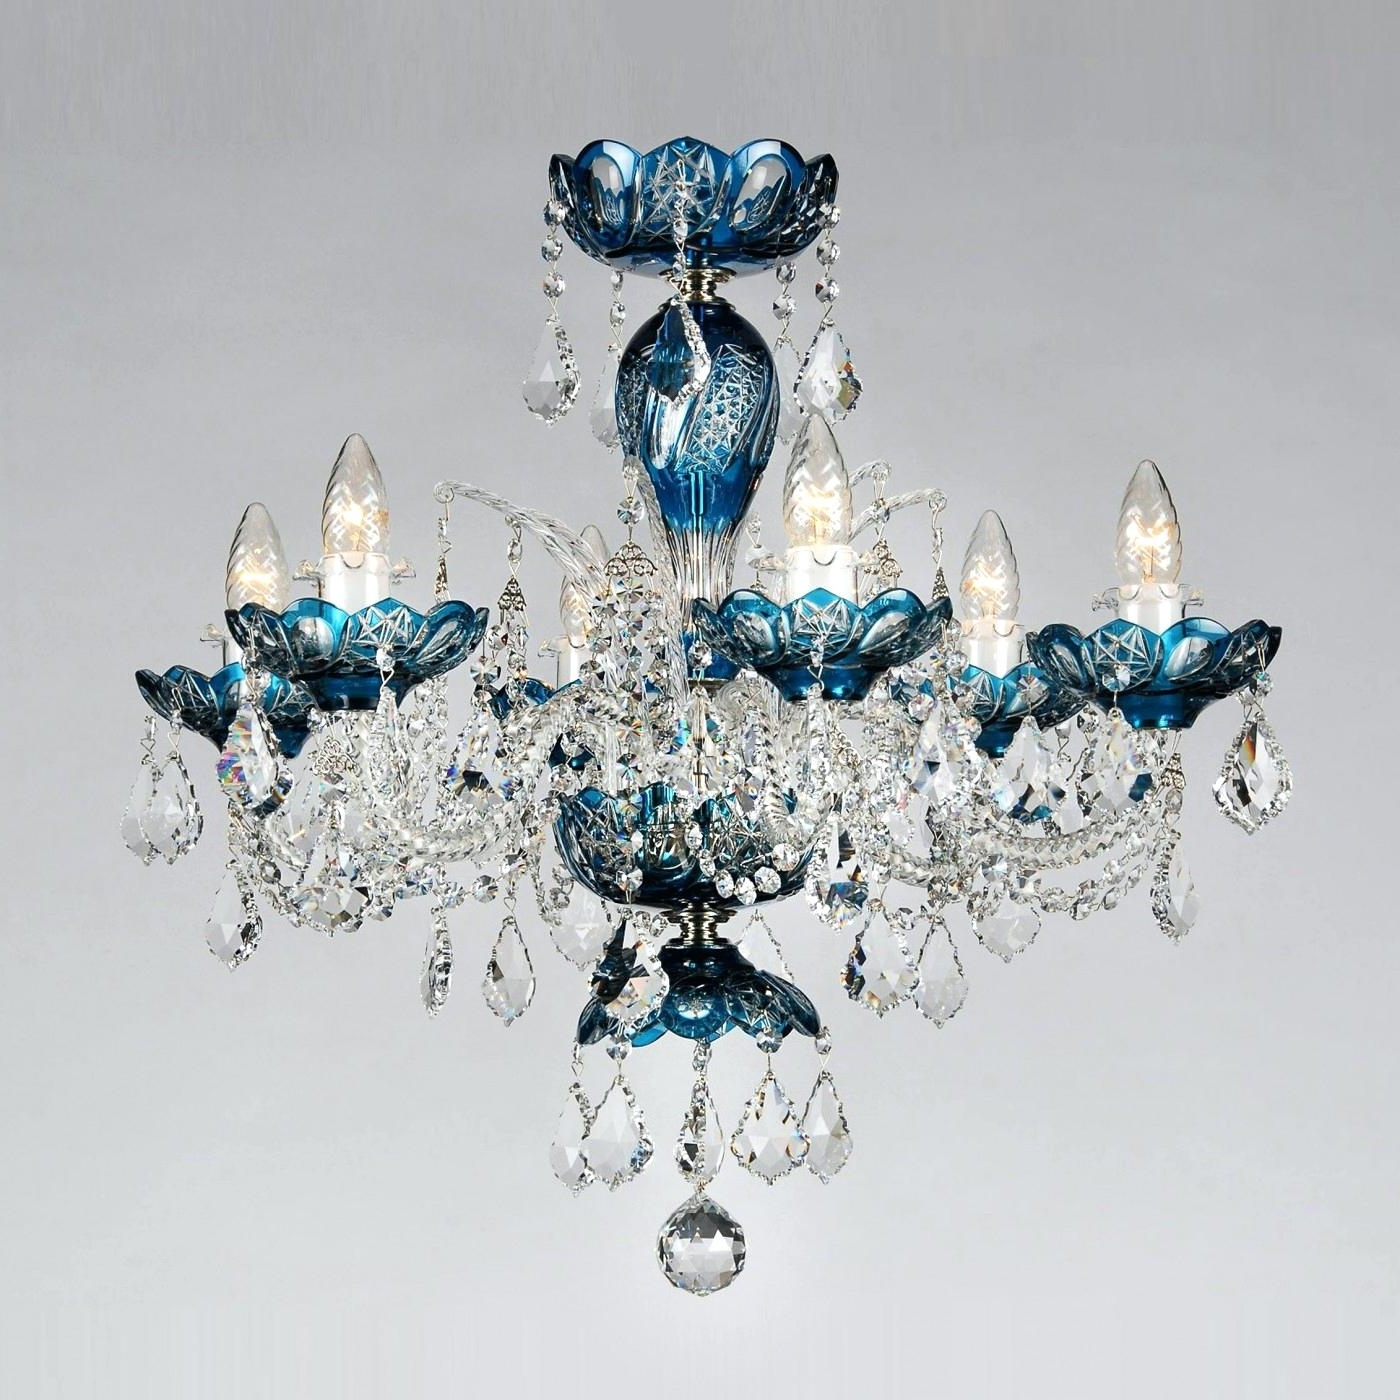 Most Popular Chandelier : Turquoise Chandelier Crystals Classic Lighting Light Pertaining To Turquoise Chandelier Crystals (View 5 of 15)